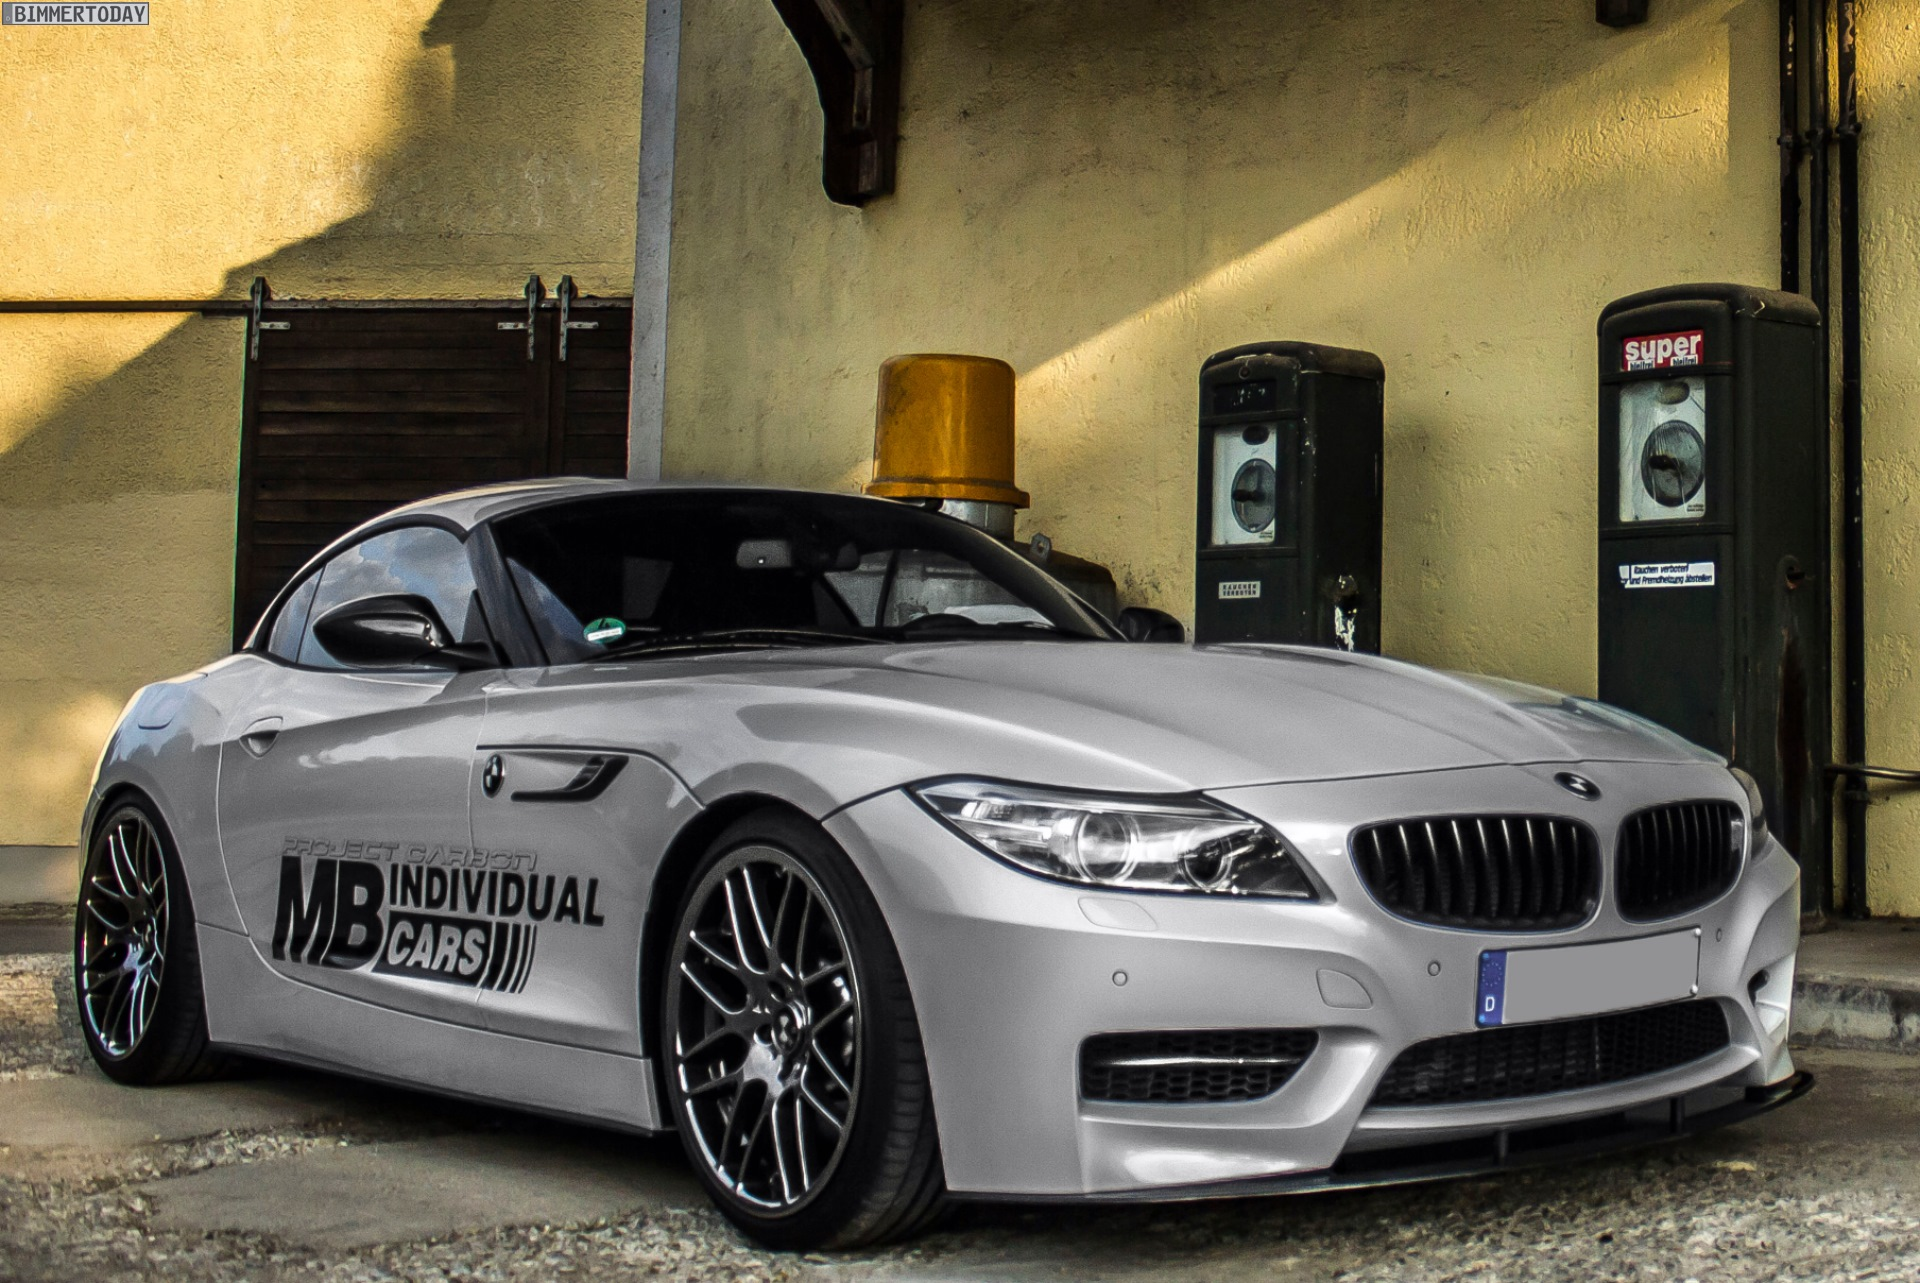 Mb Individual Cars Carbon Tuning F 252 R Den Bmw Z4 Sdrive35is E89 Lci